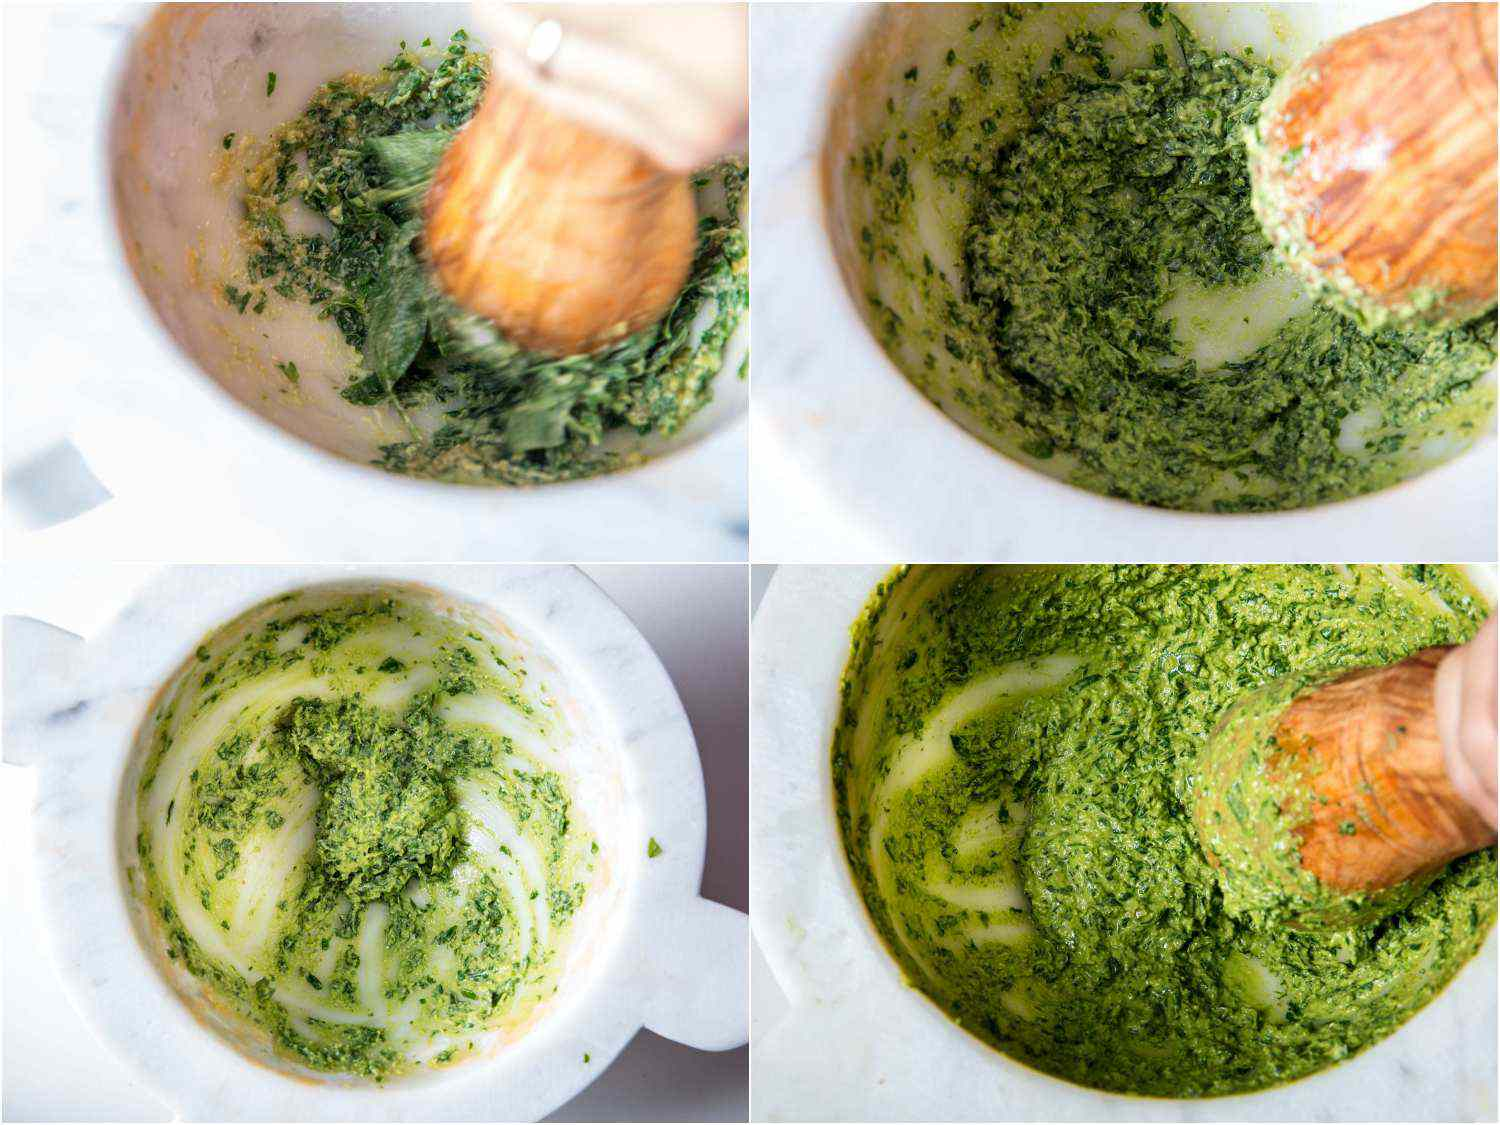 Photo collage showing pounding basil leaves into garlic and pine nuts to make pesto sauce in a marble mortar with wooden pestle.